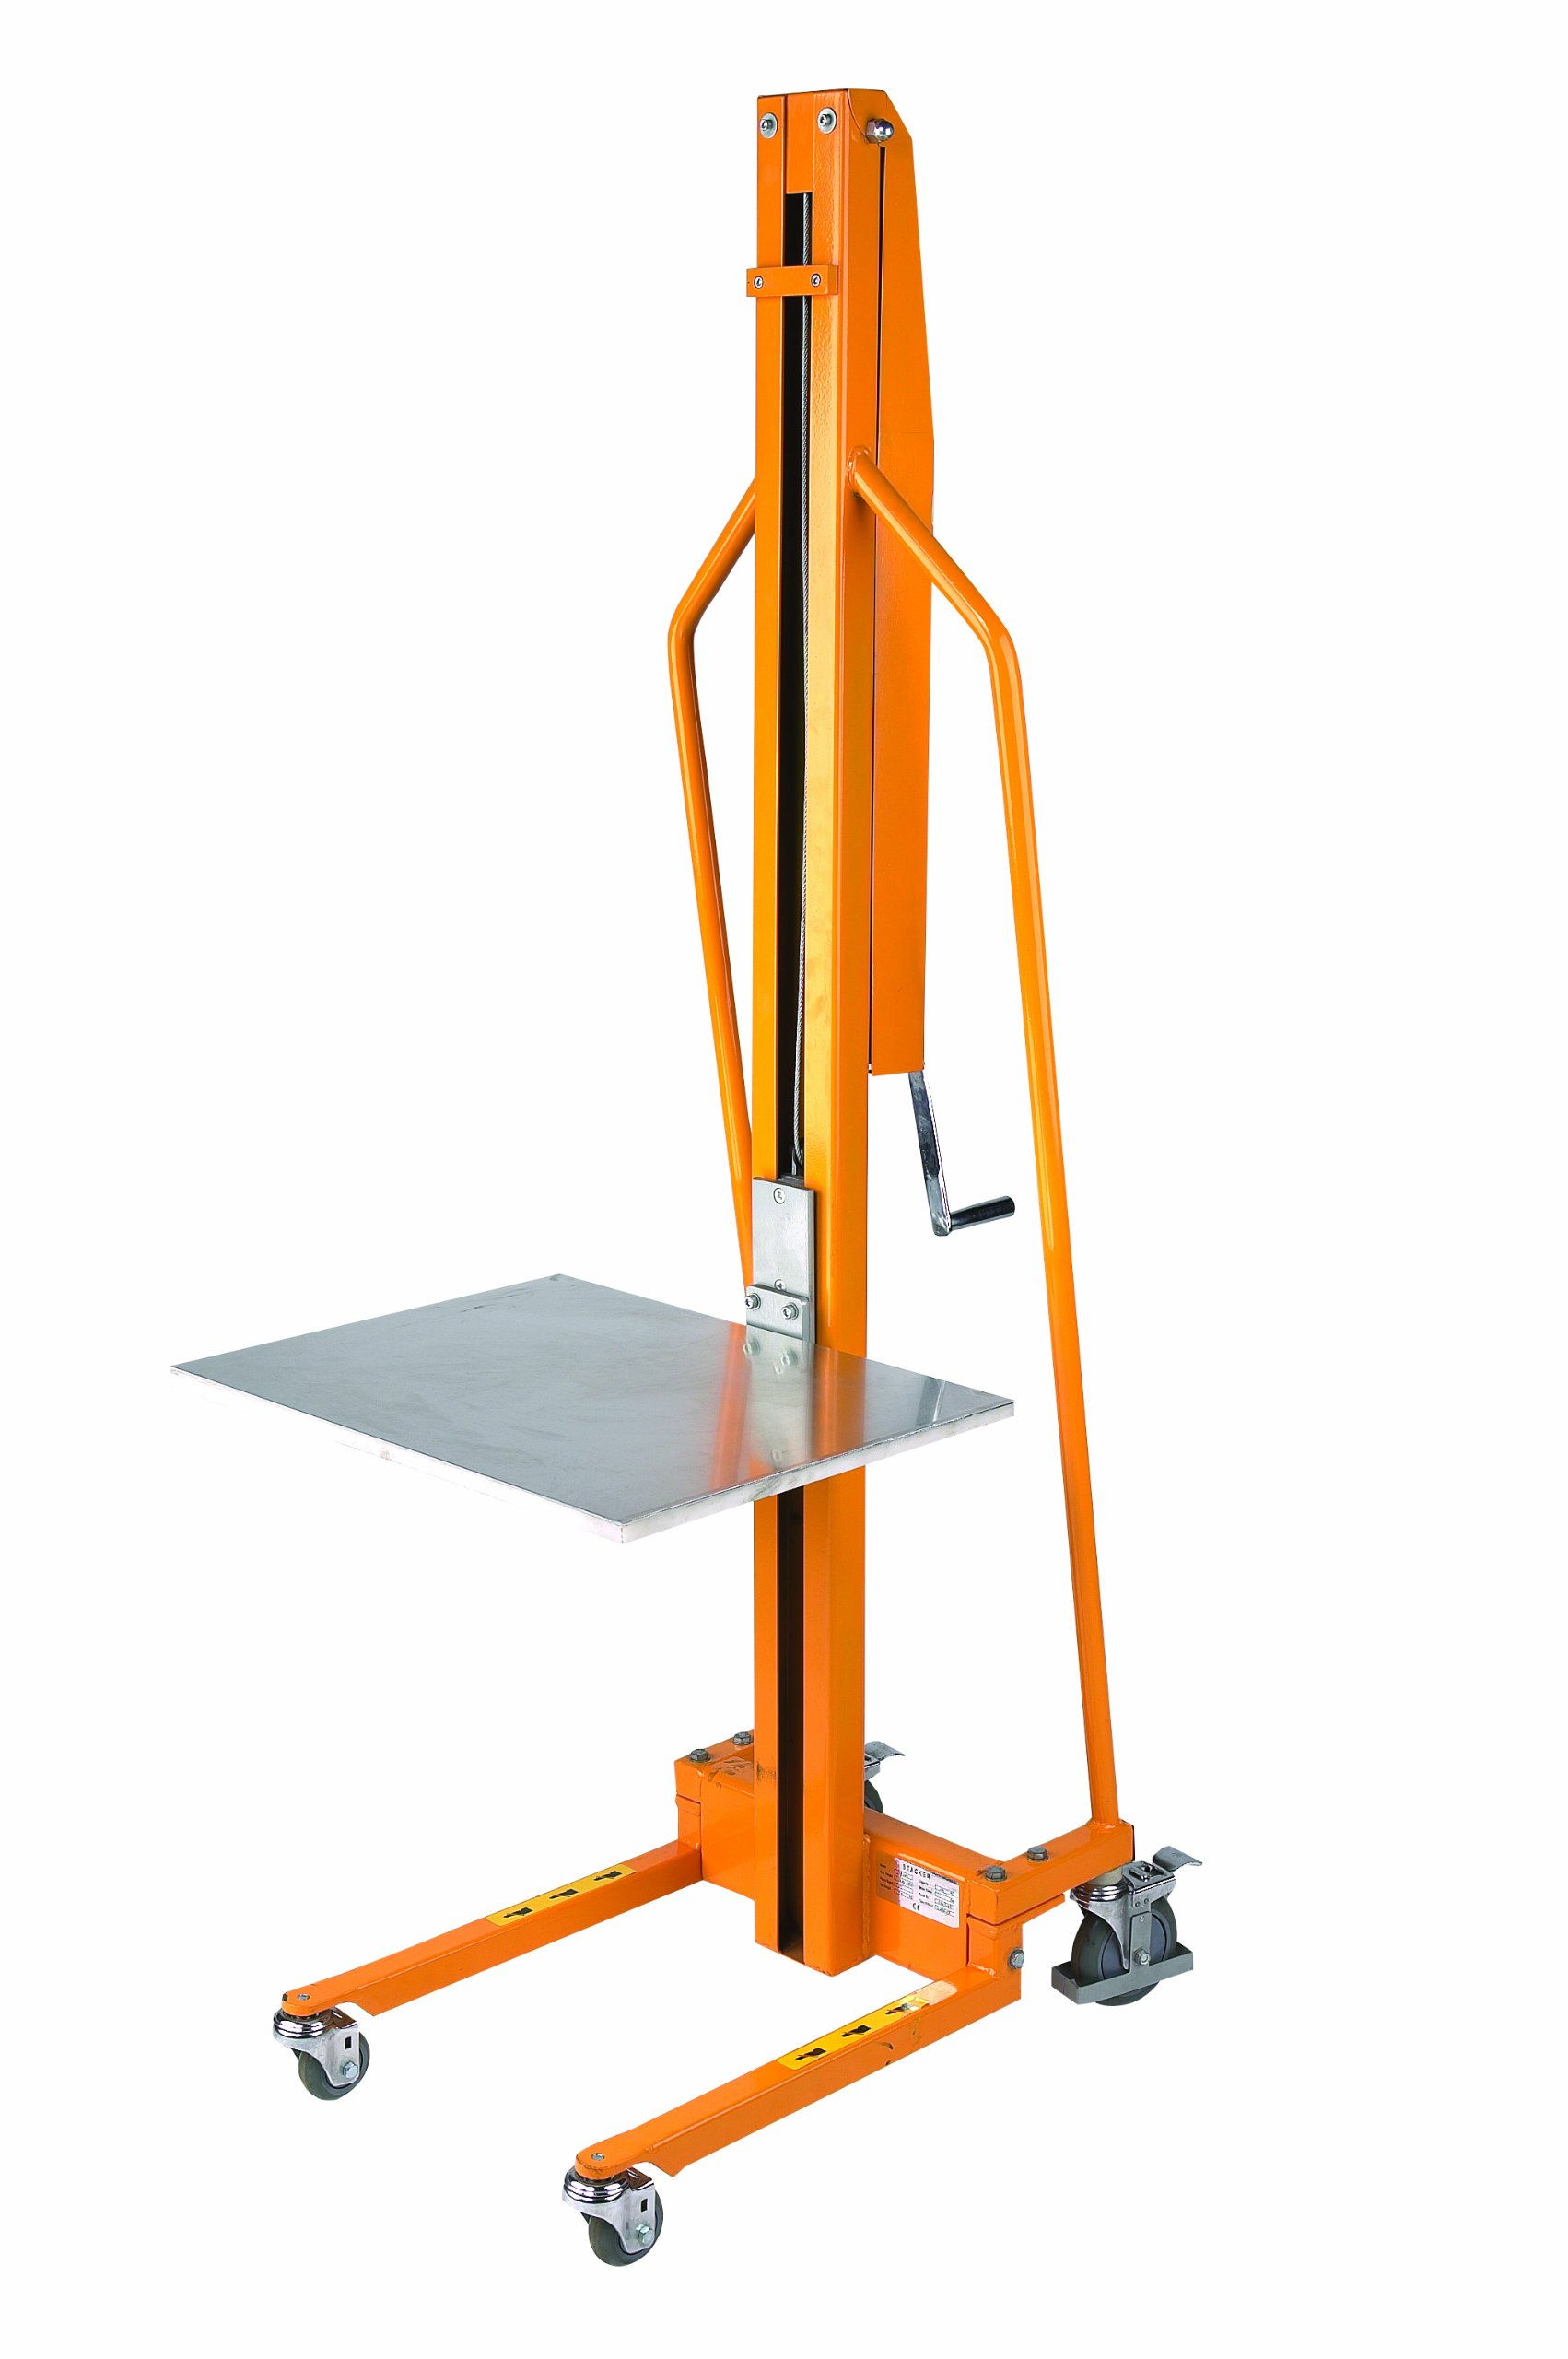 Wesco 272467 Manual Office Lift, 58-1/2'' Lift Height, 23'' x 18'' Platform, 220 lb. Capacity